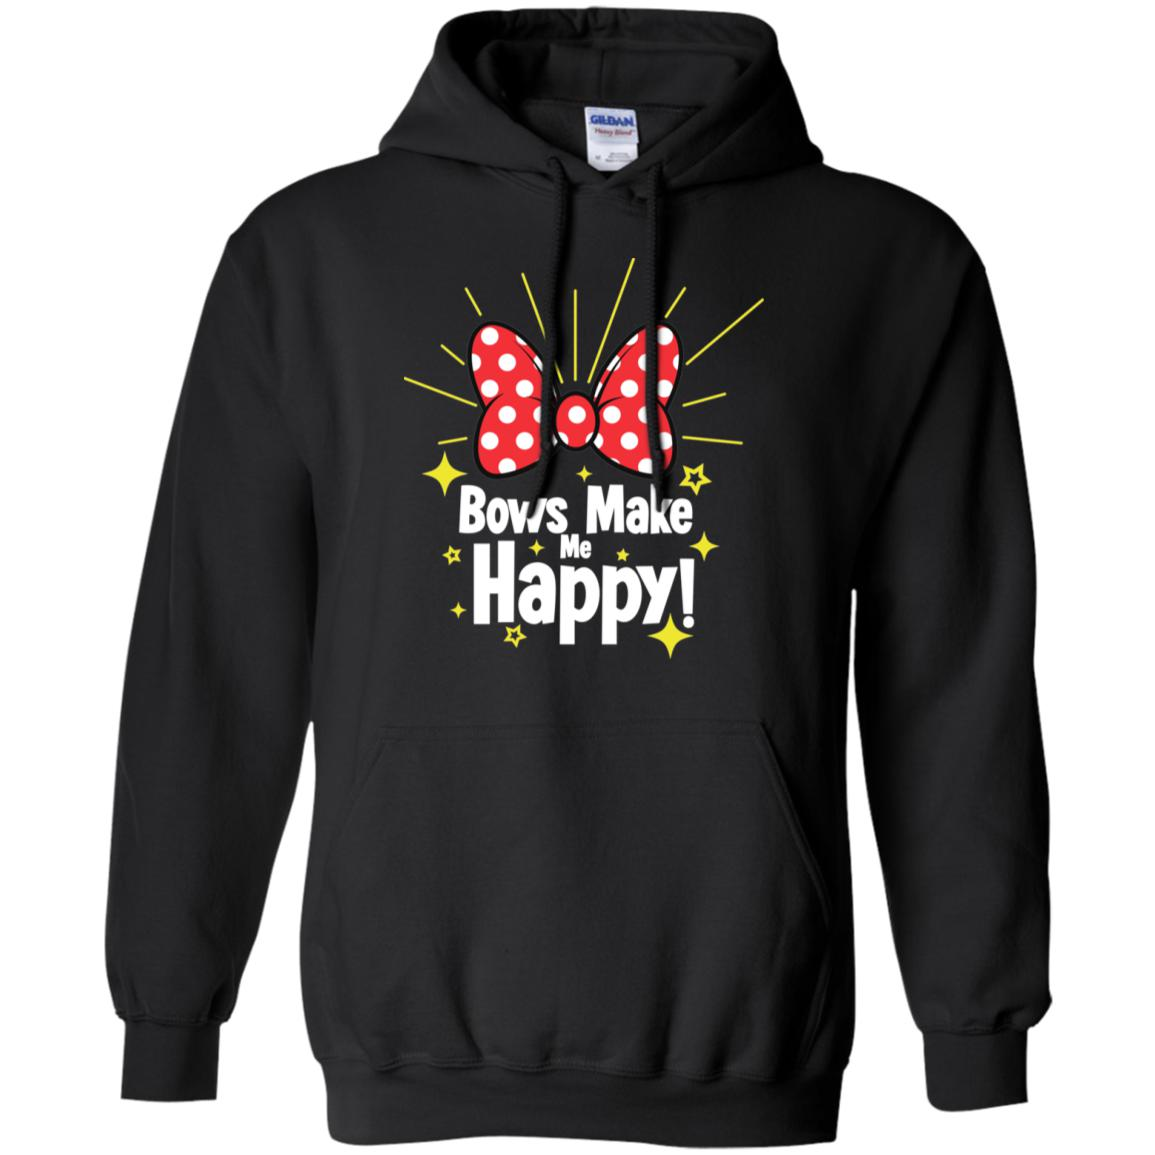 Bows Make Me Happy - Gildan Pullover Hoodie 8 oz.